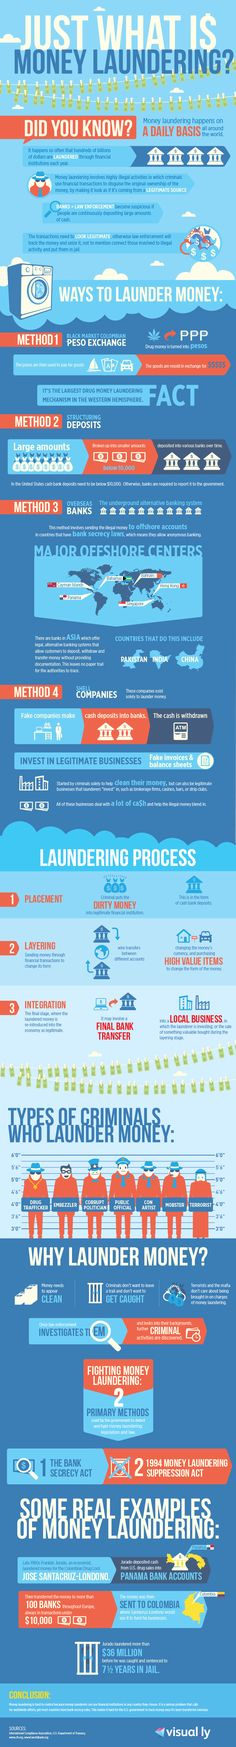 So Just What Is Money Laundering [Infographic]